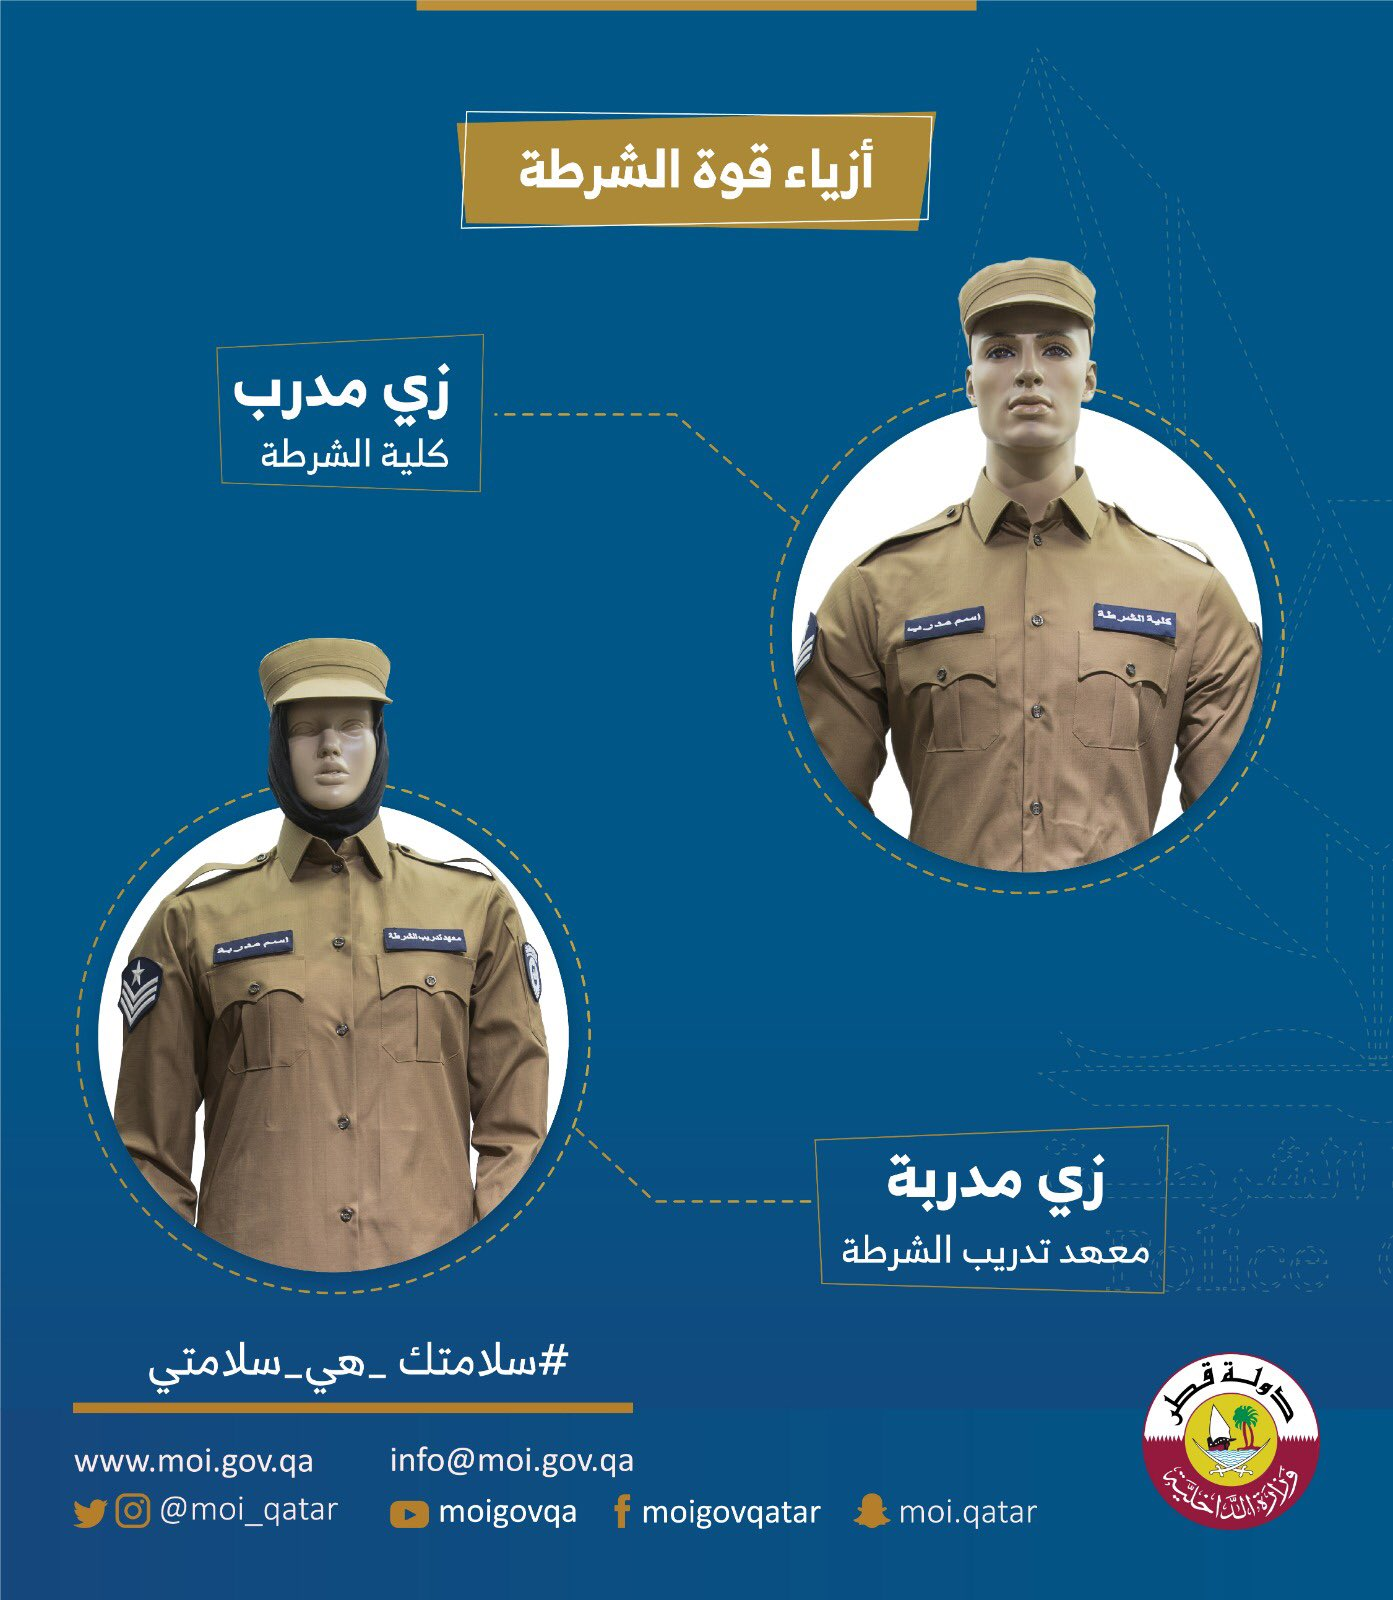 MoI unveils new uniforms for Qatar police